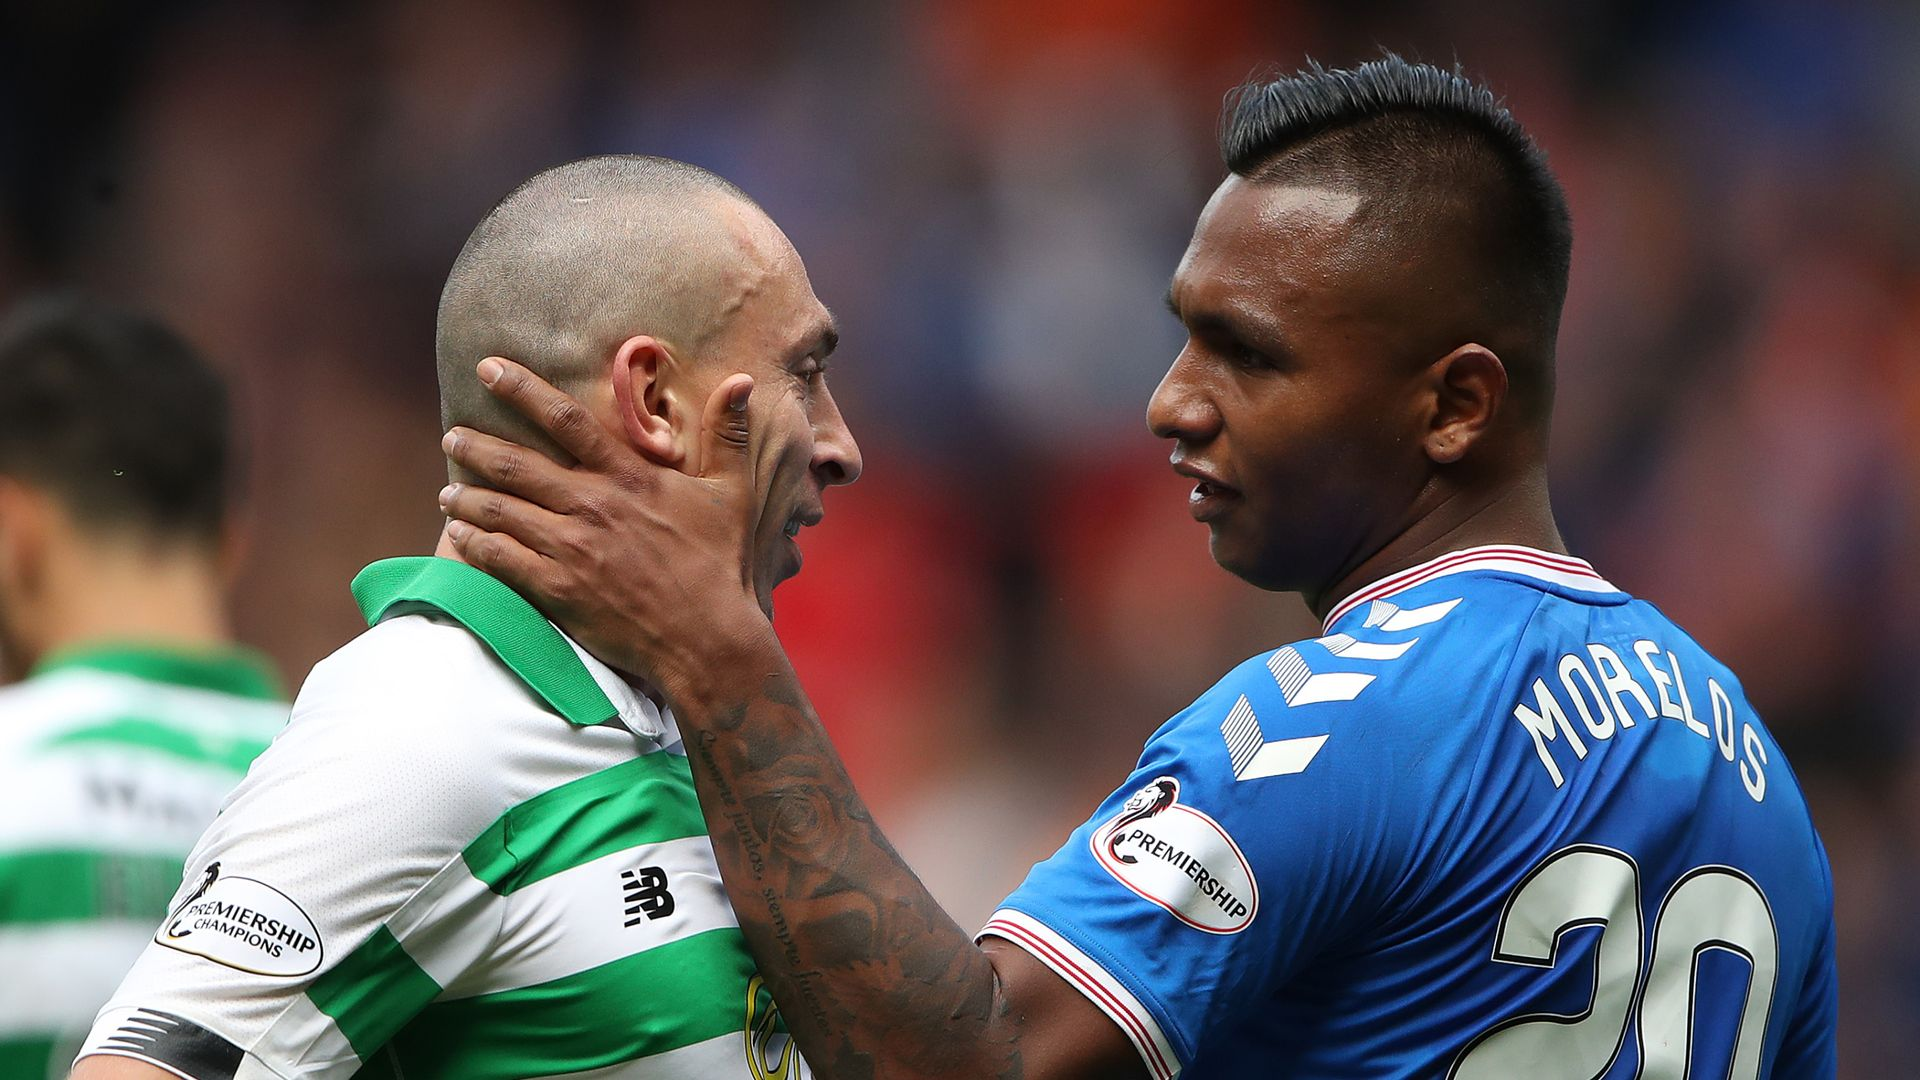 Watch the Old Firm derby live on Sky Sports